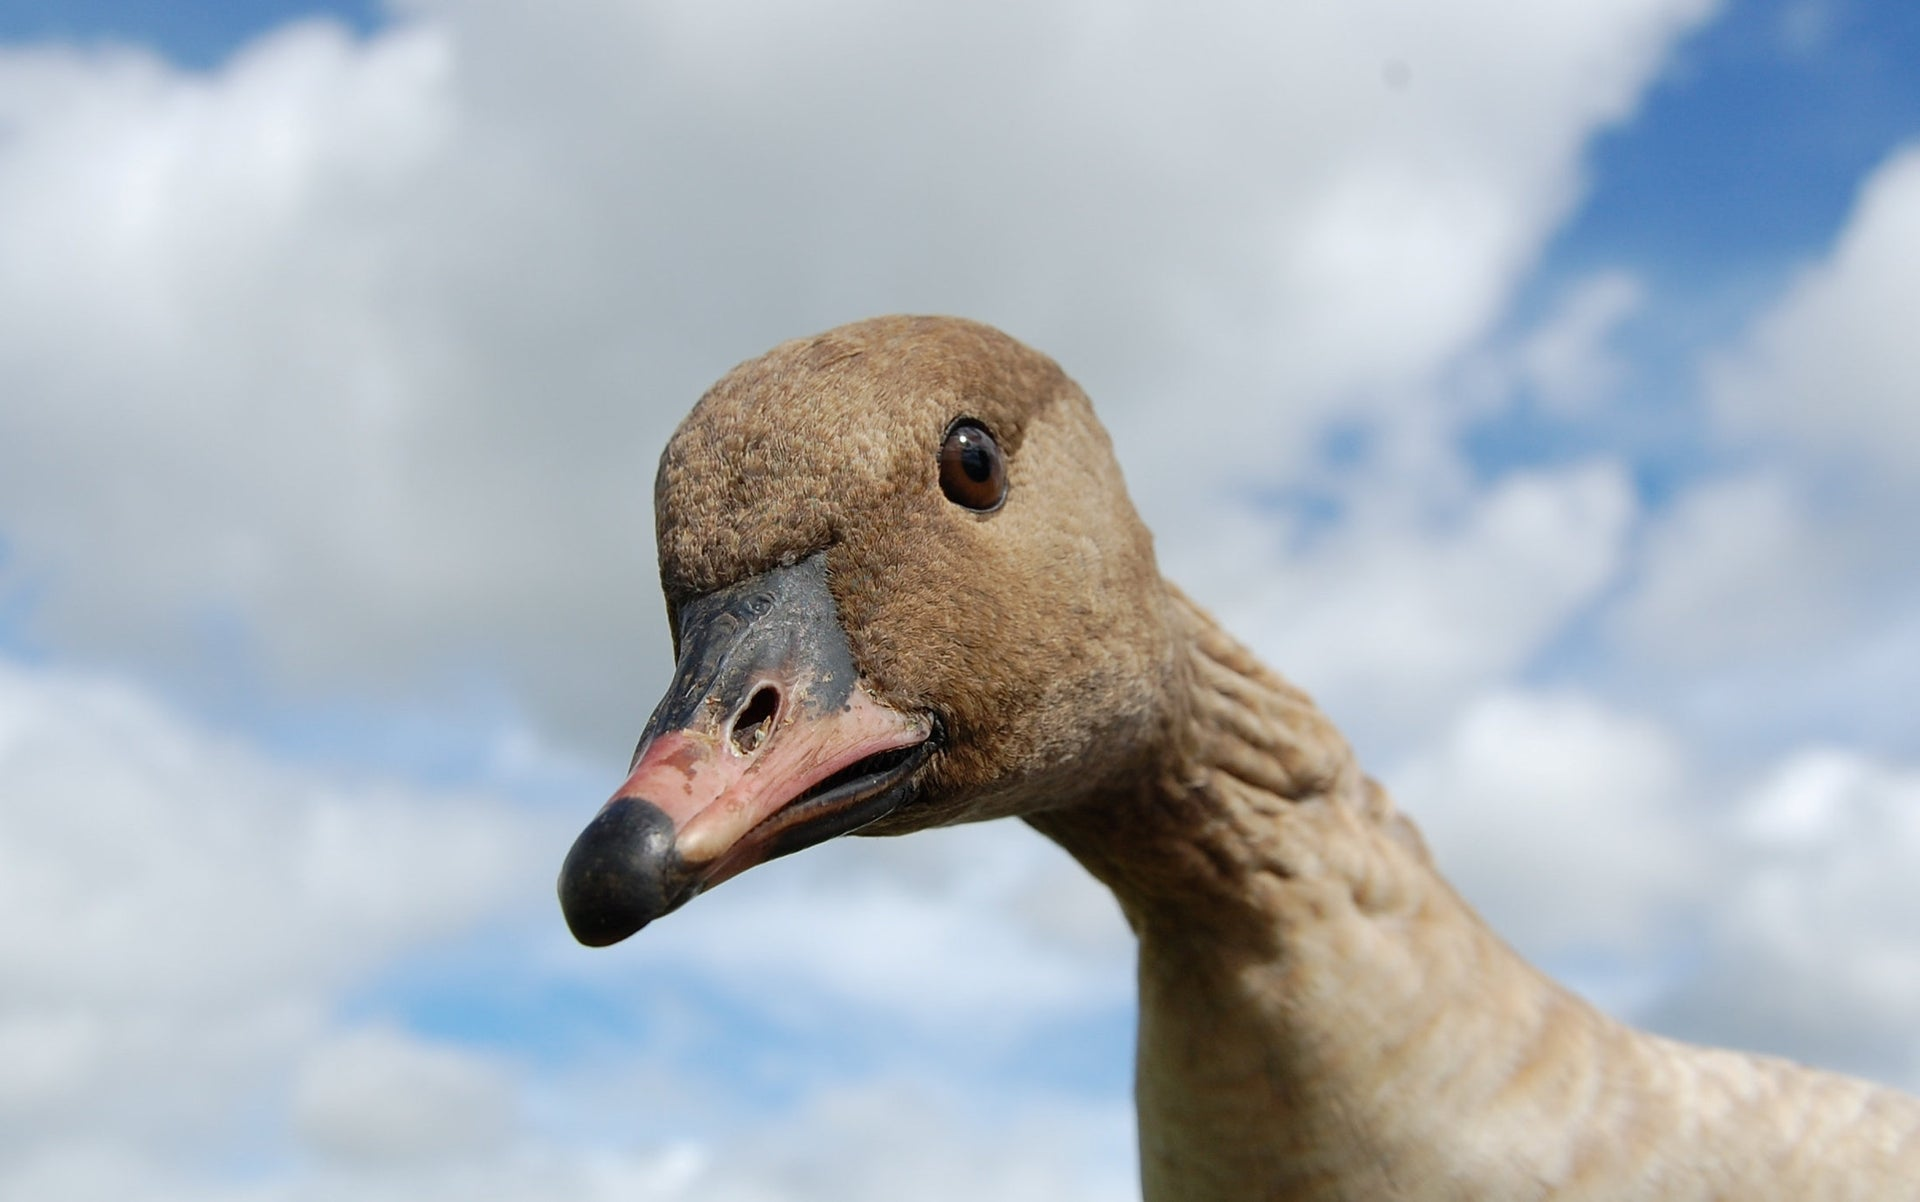 Pink footed goose in Norway are one of the species said to be in decline